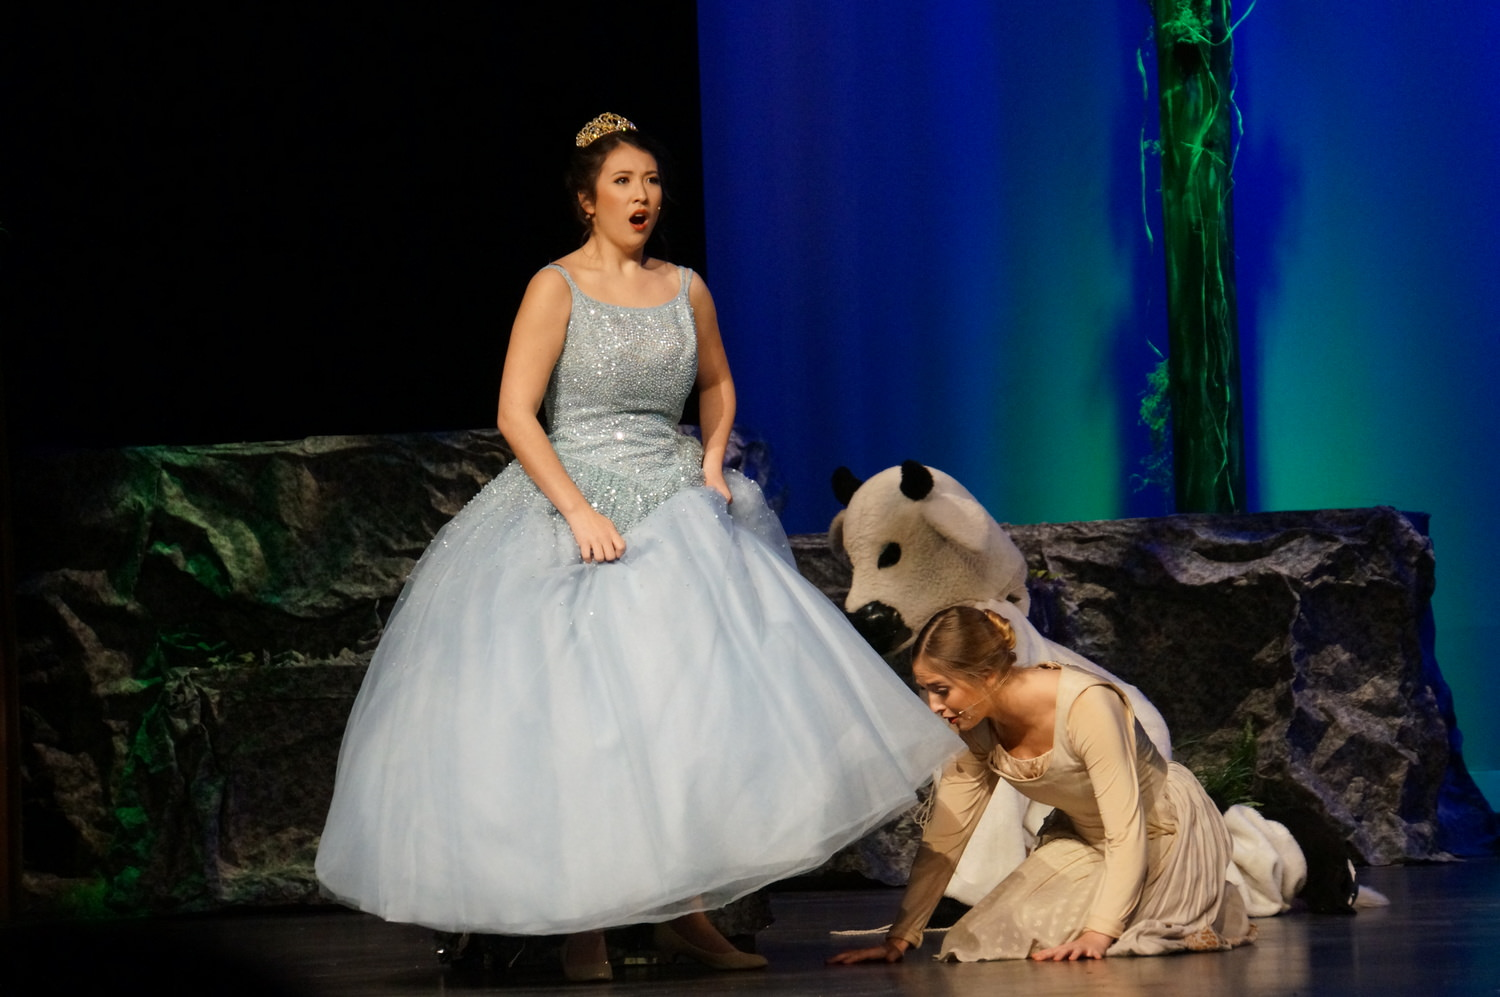 Cinderella escaping/hiding from the prince, while the Baker's wife discovering Cinderella has gold slippers. 1